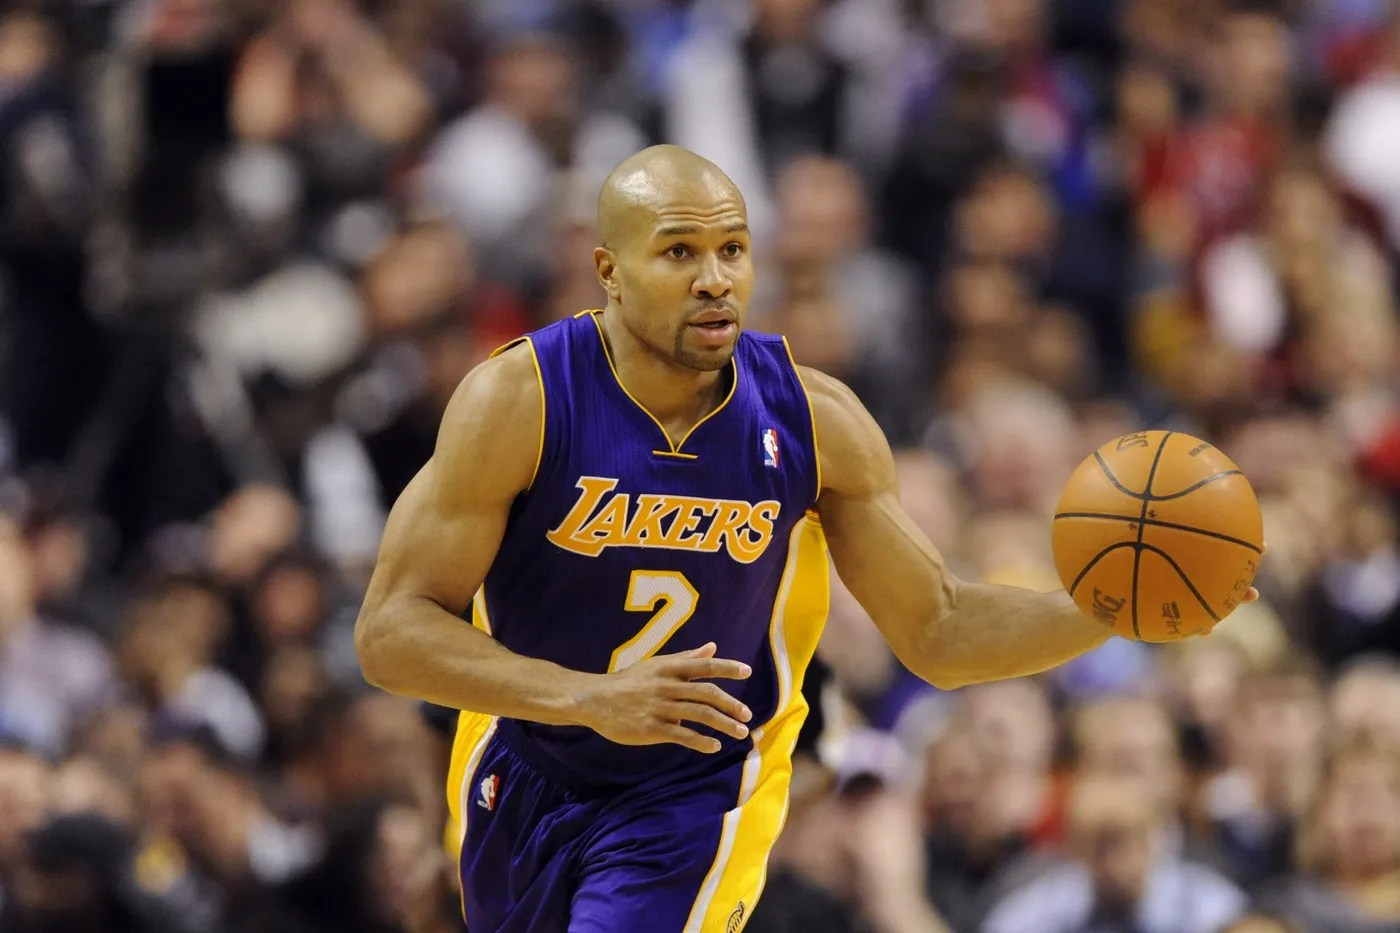 Feb 06, 2012; Philadelphia, PA, USA; Los Angeles Lakers guard Derek Fisher (2) brings the ball up court during the second quarter against the Philadelphia 76ers at the Wells Fargo Center. The Sixers defeated the Lakers 95-90. Mandatory Credit: Howard Smith-USA TODAY Sports